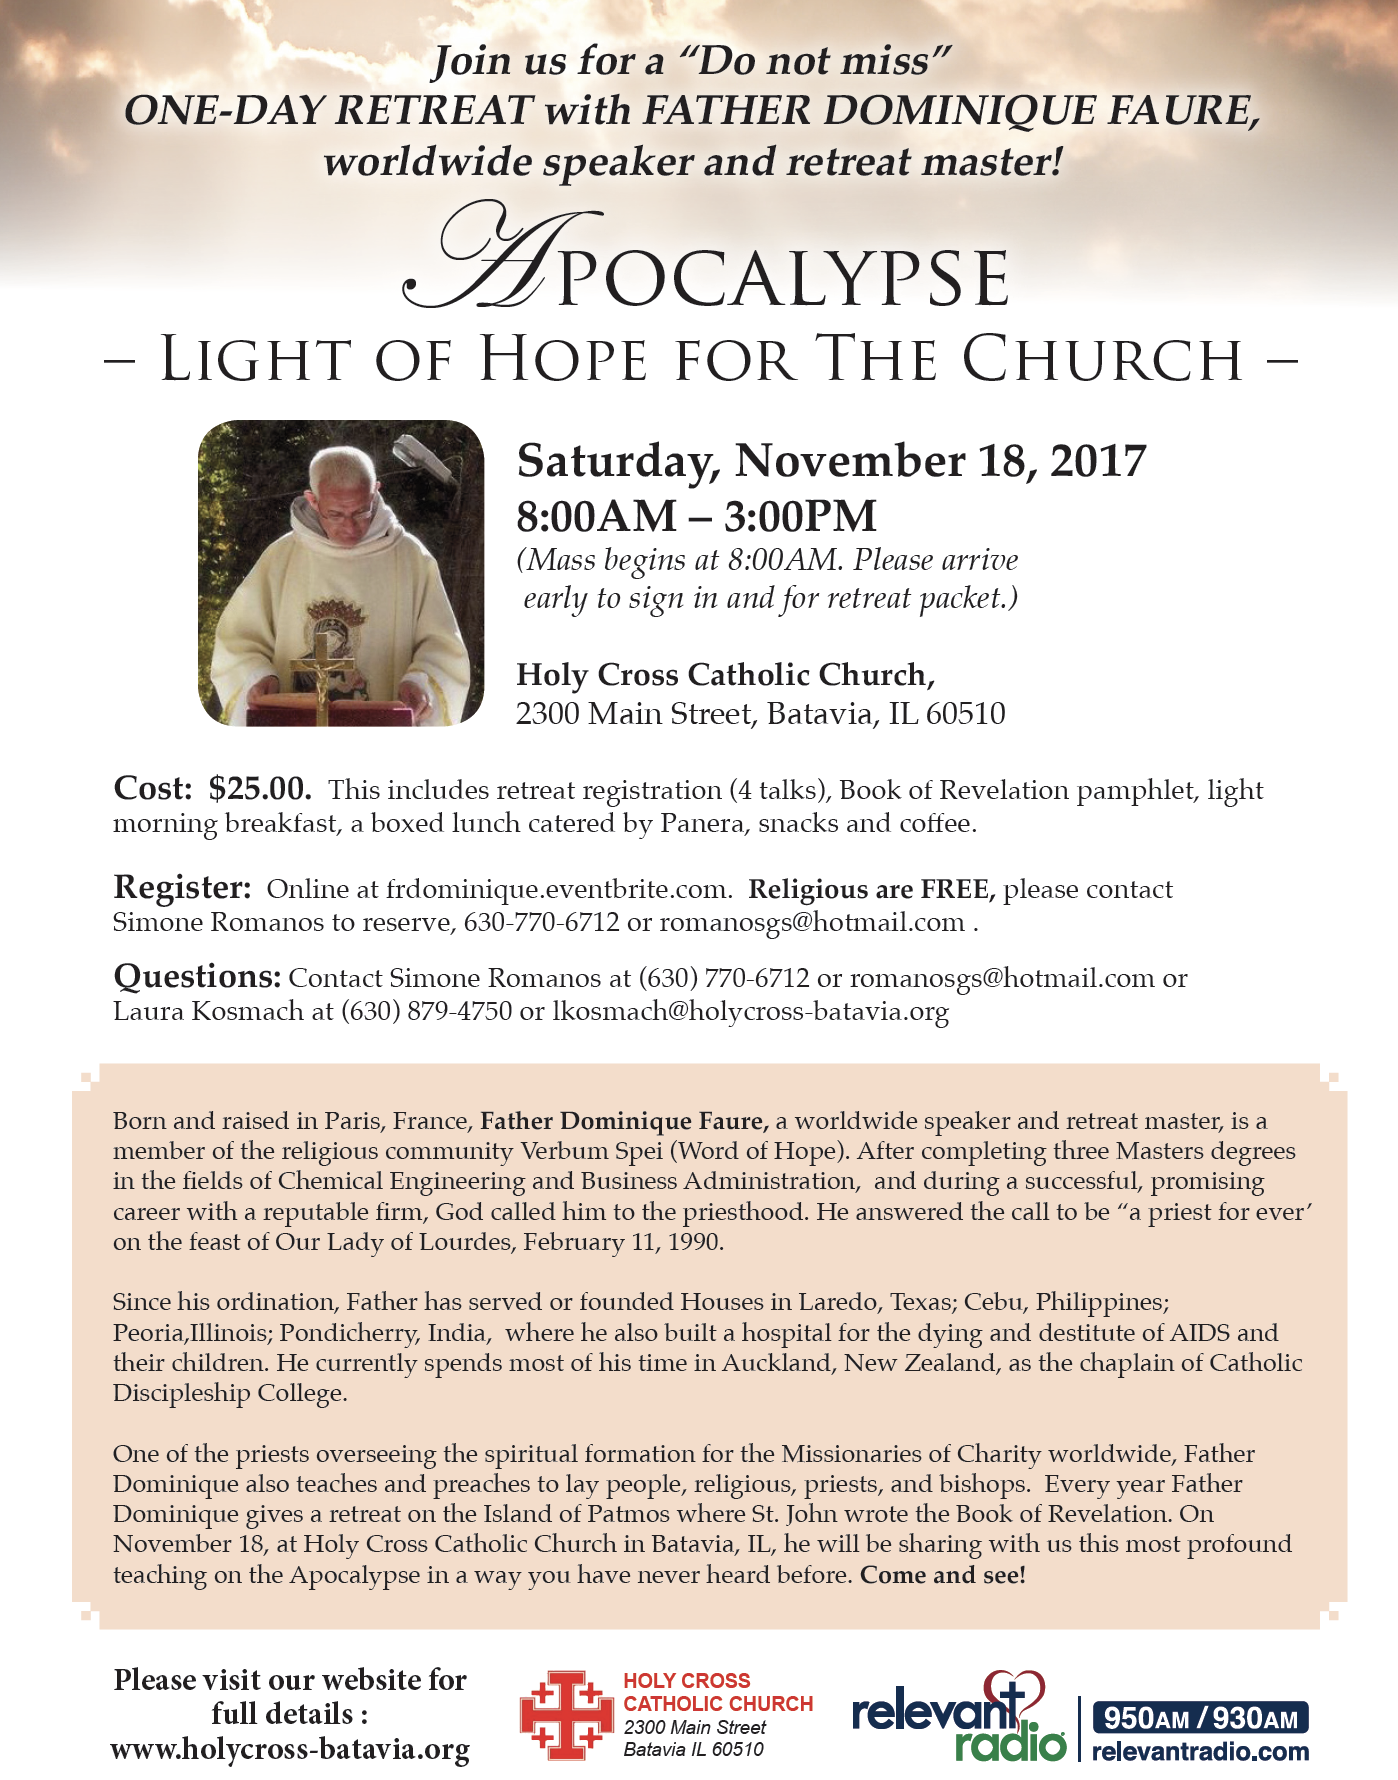 Fr. Dominique Faure One-Day Retreat Flyer